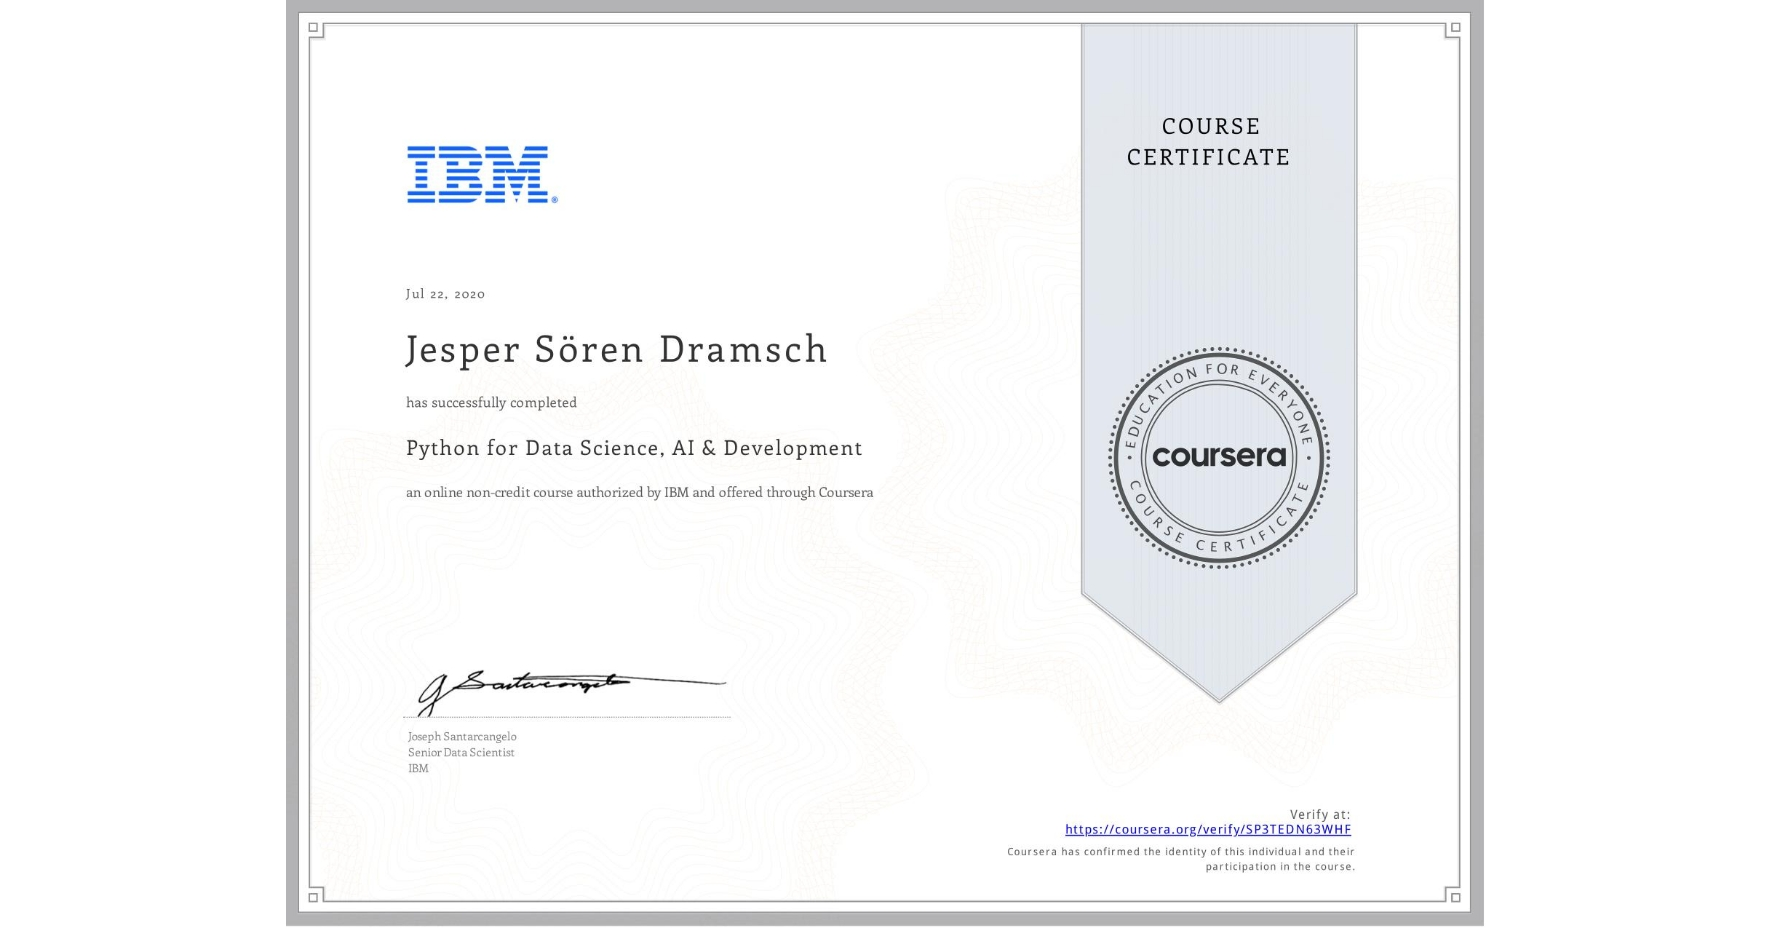 View certificate for Jesper Sören Dramsch, Python for Data Science and AI, an online non-credit course authorized by IBM and offered through Coursera